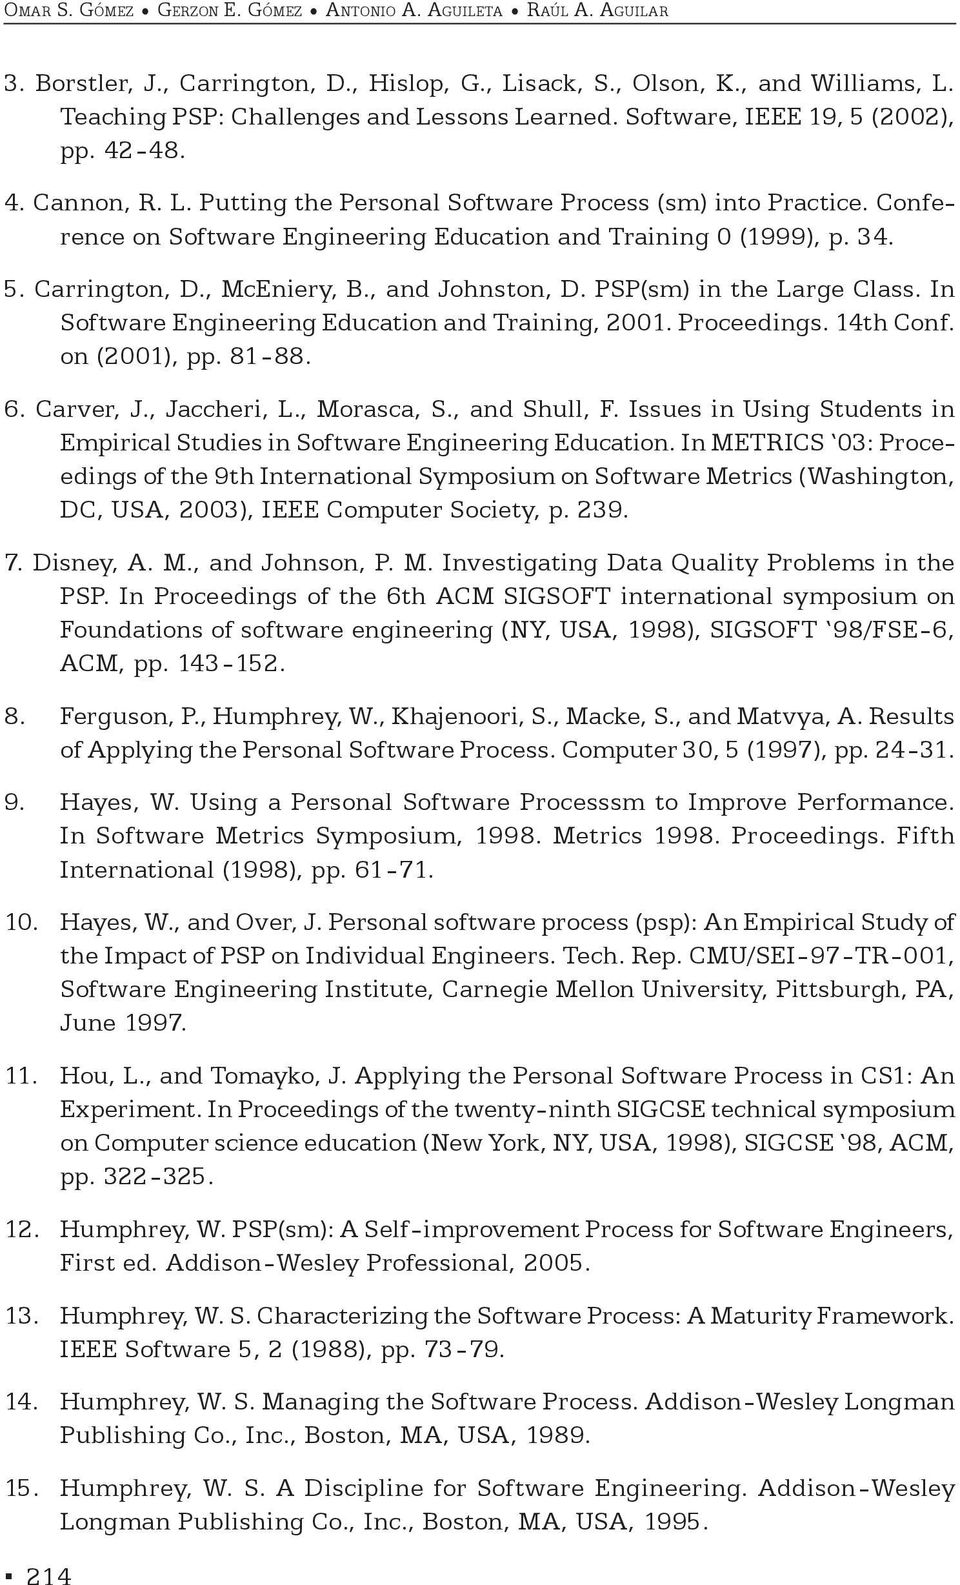 , McEniery, B., and Johnston, D. PSP(sm) in the Large Class. In Software Engineering Education and Training, 2001. Proceedings. 14th Conf. on (2001), pp. 81-88. 6. Carver, J., Jaccheri, L.